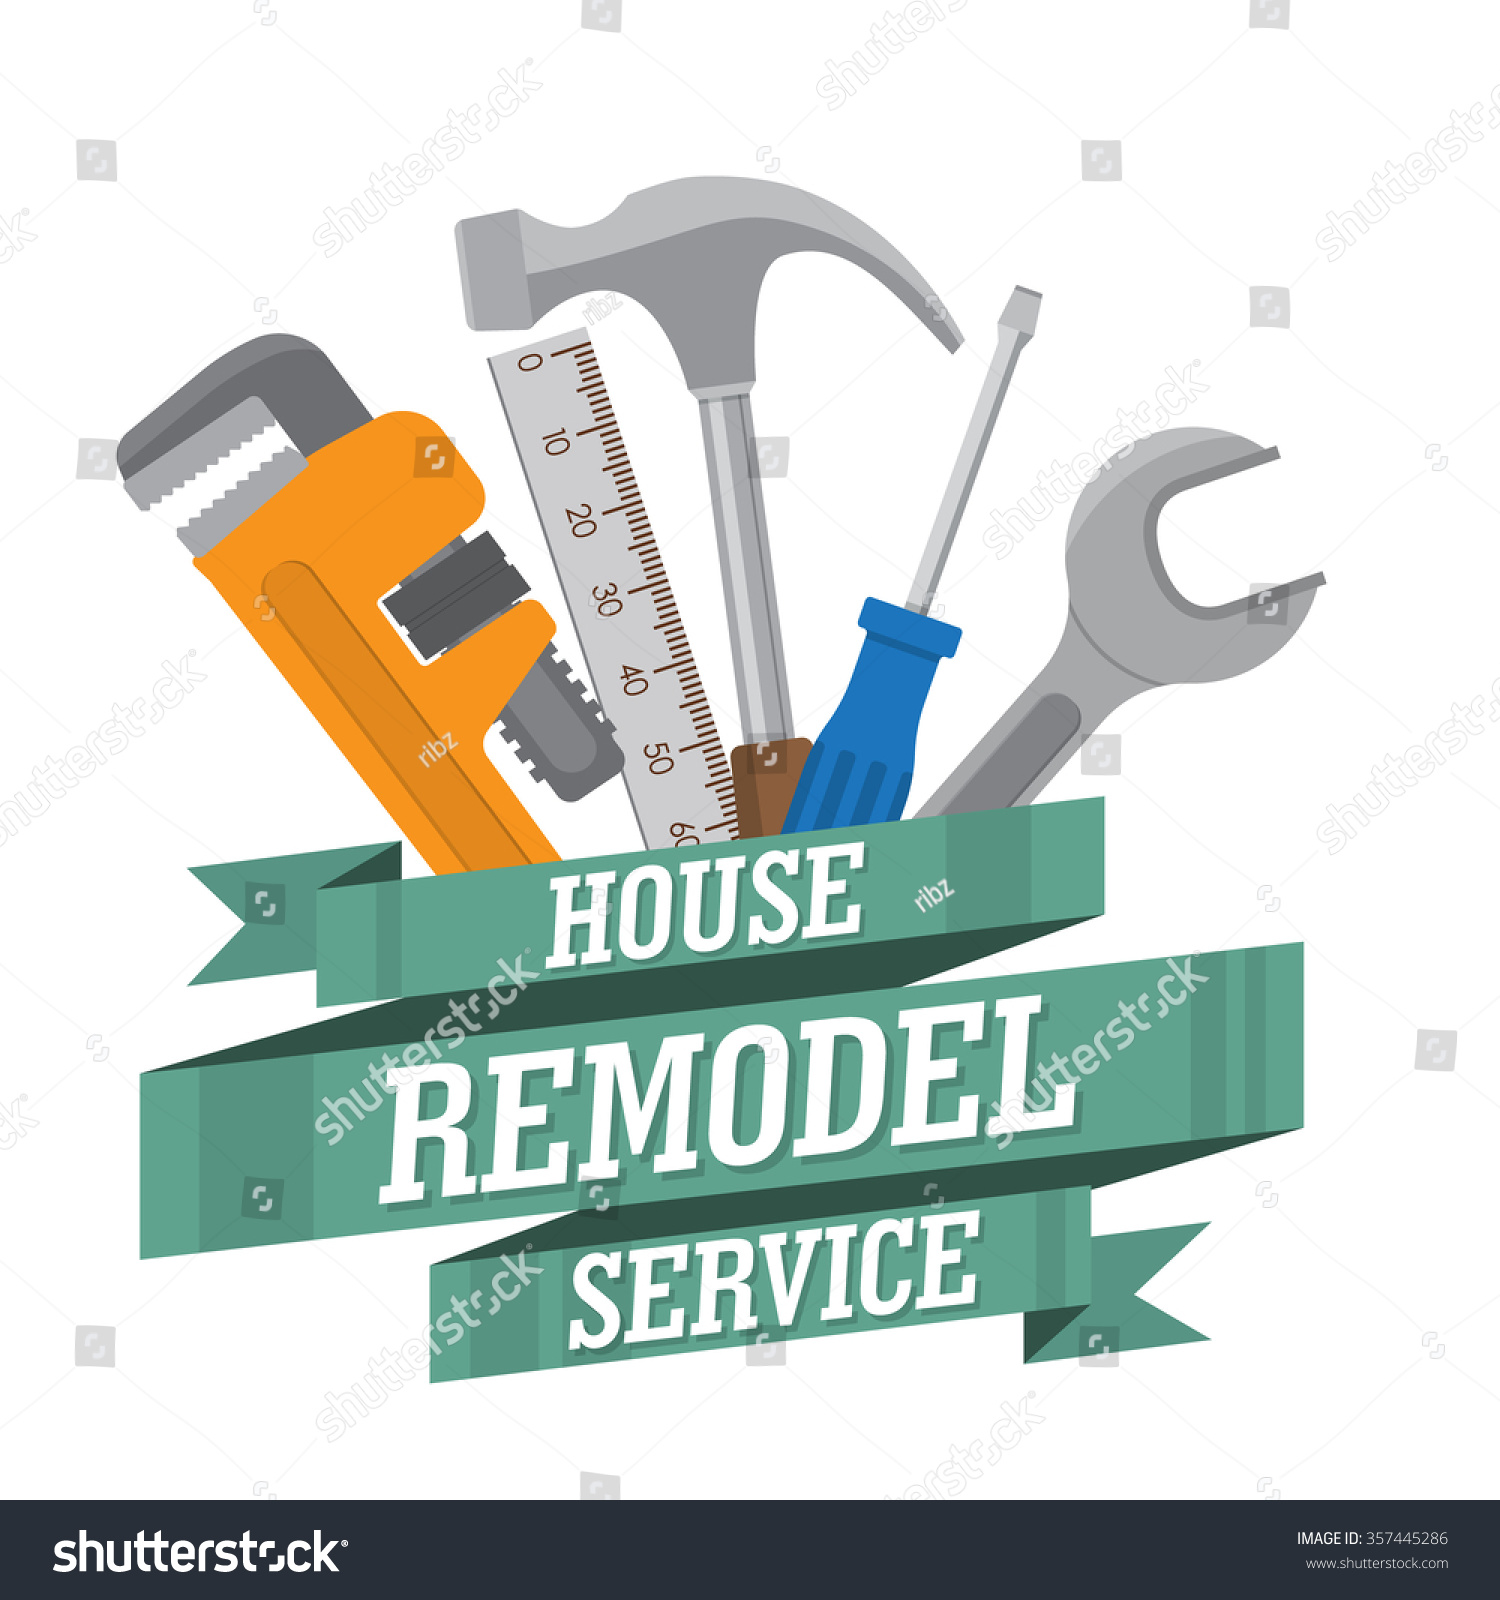 House remodel tools home repair service stock vector for House remodeling tools